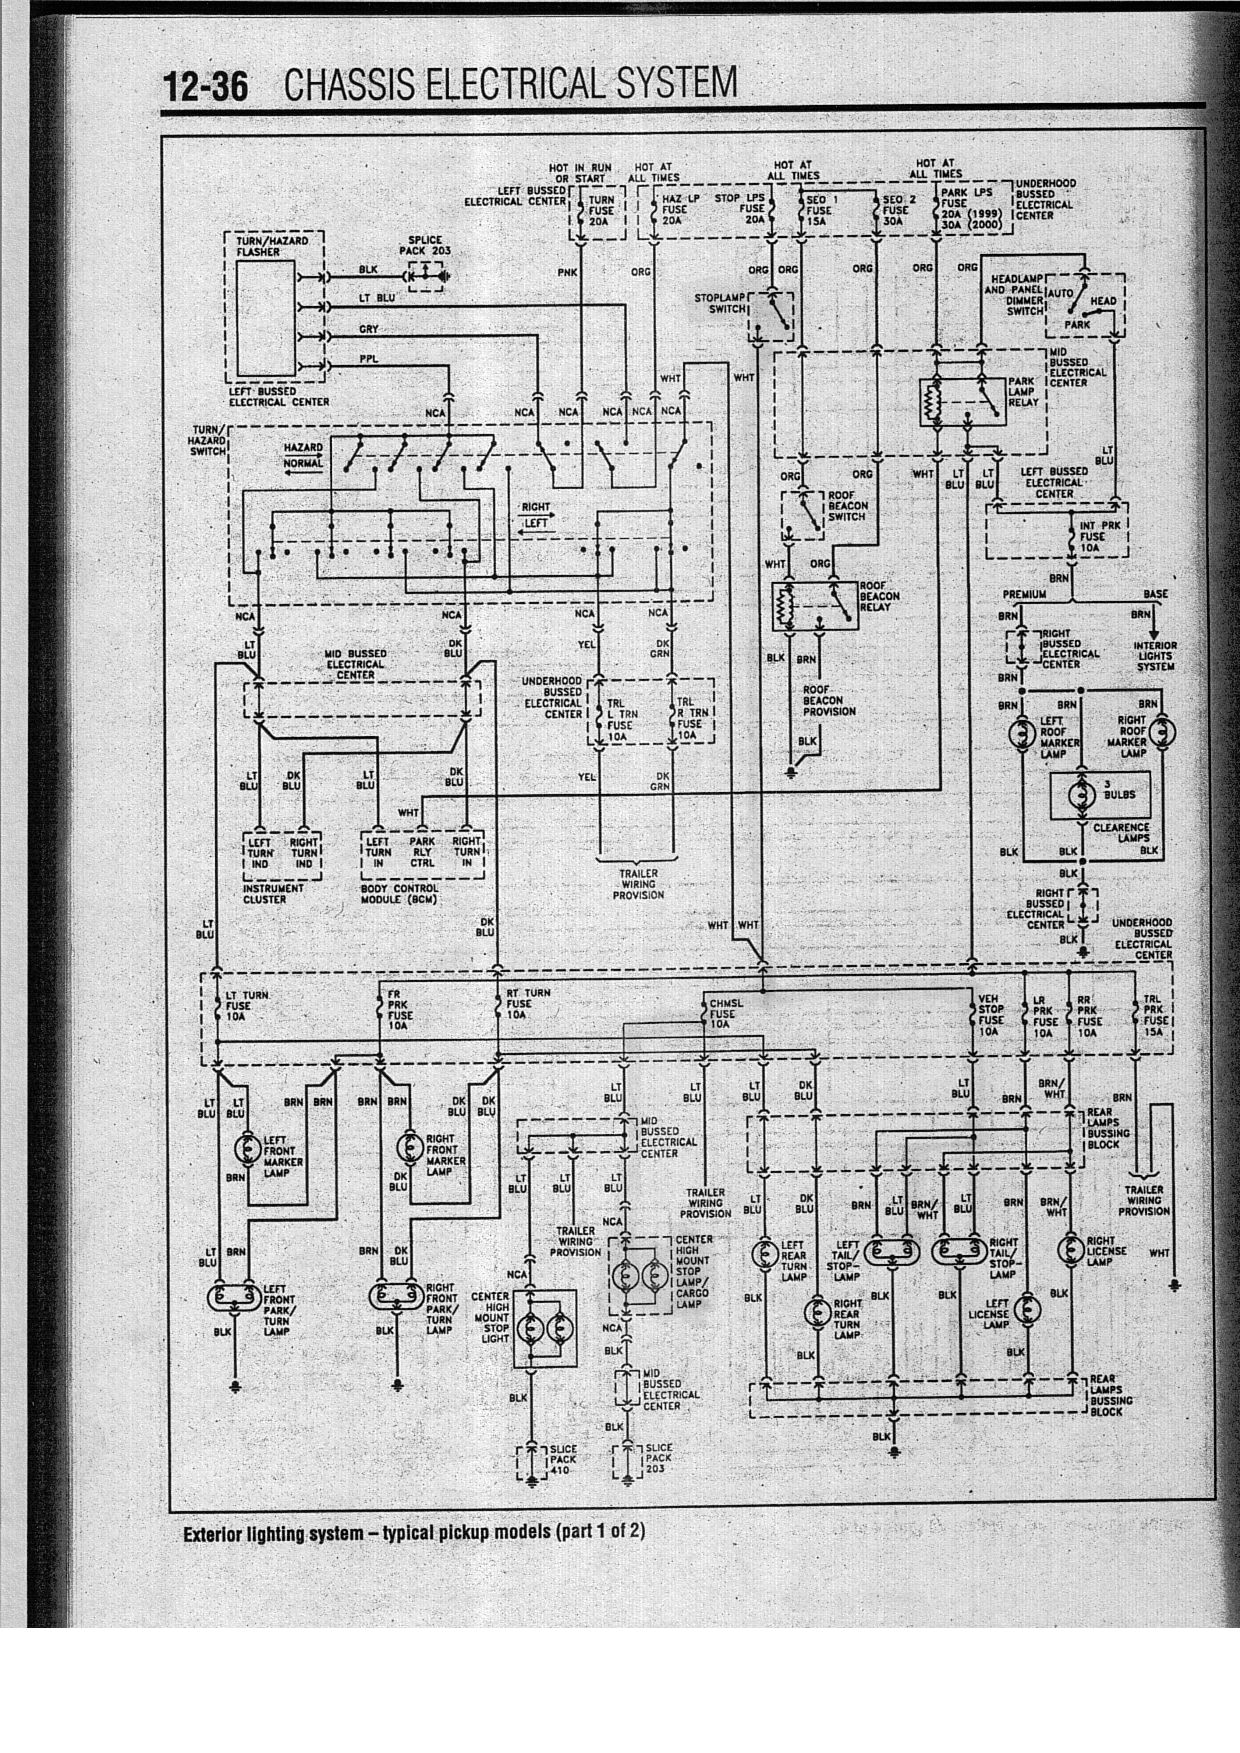 Headlight And Tail Light Wiring Schematic / Diagram – Typical 1973 on 1967 chevy wiring diagram, 1990 chevy k1500 wiring diagram, chevy a/c compressor wiring diagram, chevy fuel gauge wiring diagram, 1989 chevy k1500 wiring diagram, turn signal relay wiring diagram, chevy c10 wiring-diagram, chevy fuel pump relay wiring diagram, chevy throttle body wiring diagram, chevy truck fuse diagram, chevy windshield wiper motor wiring diagram, chevy 7 pin wiring diagram, 1962 chevy wiper motor wiring diagram, chevy 1500 wiring diagram, chevy truck aftermarket tail lights, chevy light switch diagram, 1994 chevy 2500 wiring diagram, 1949 chevy pickup wiring diagram, chevy neutral safety switch wiring diagram, chevy suburban radio wiring diagram,